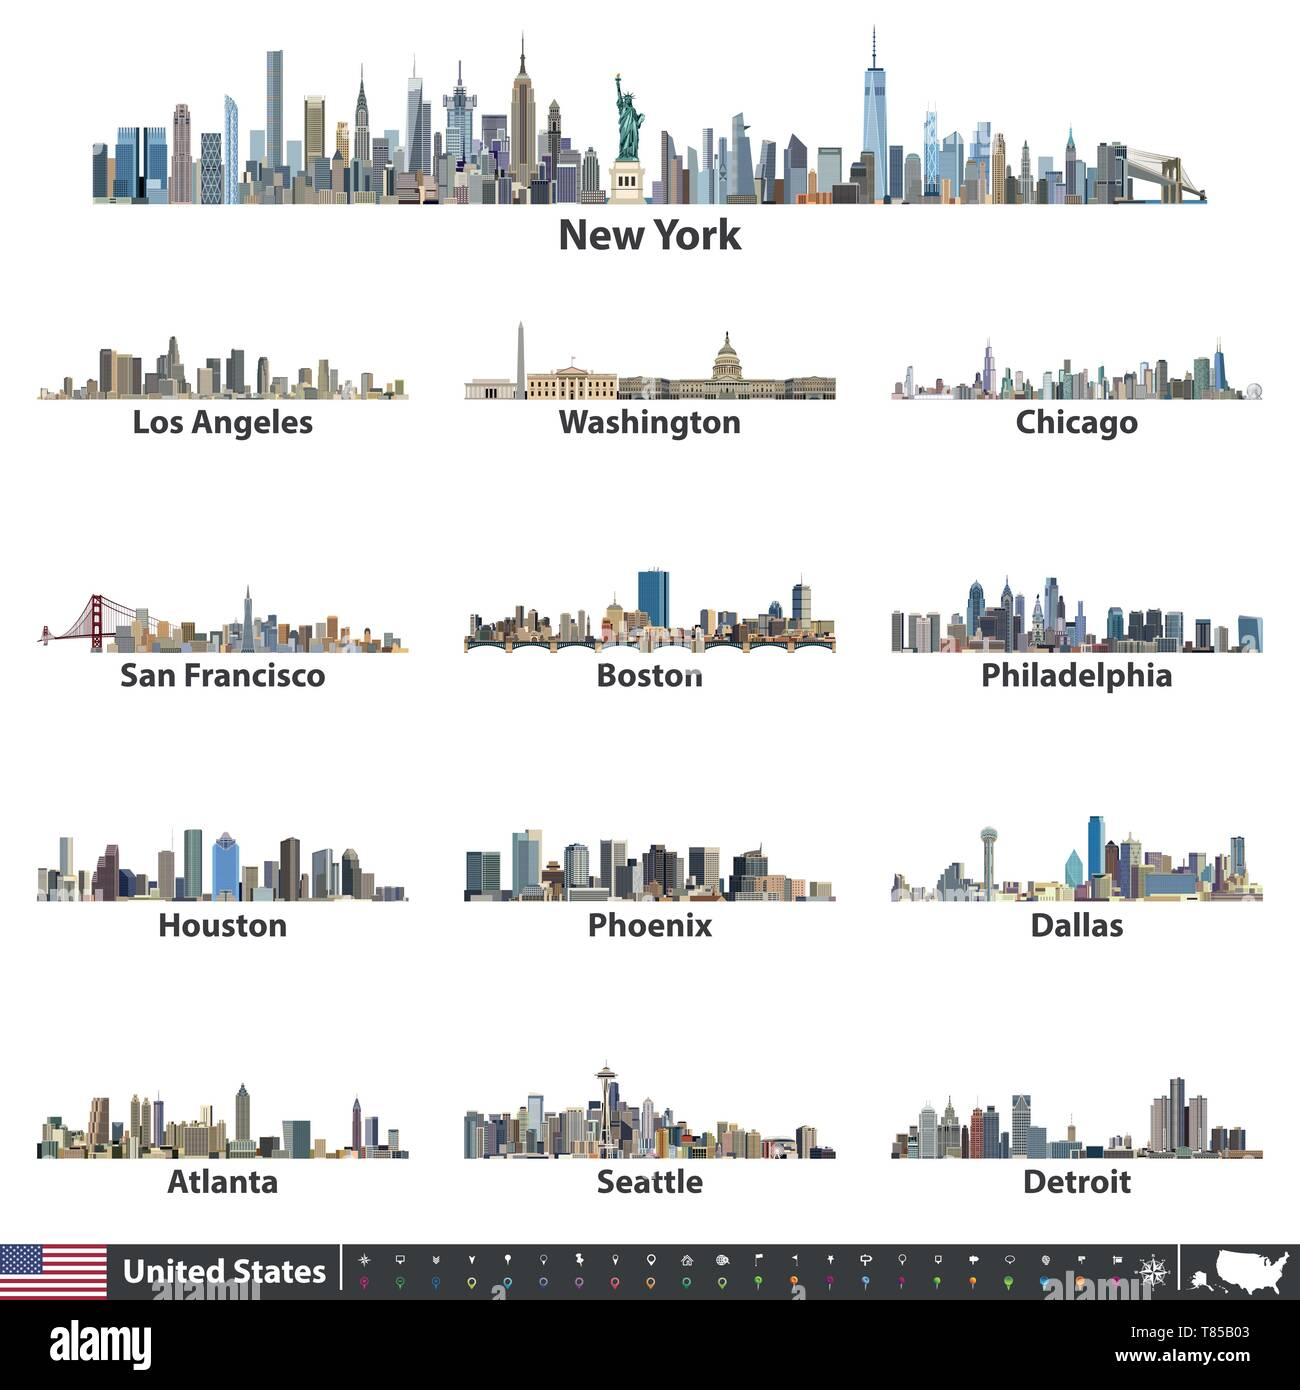 vector illustration of United States largest cities skylines - Stock Vector